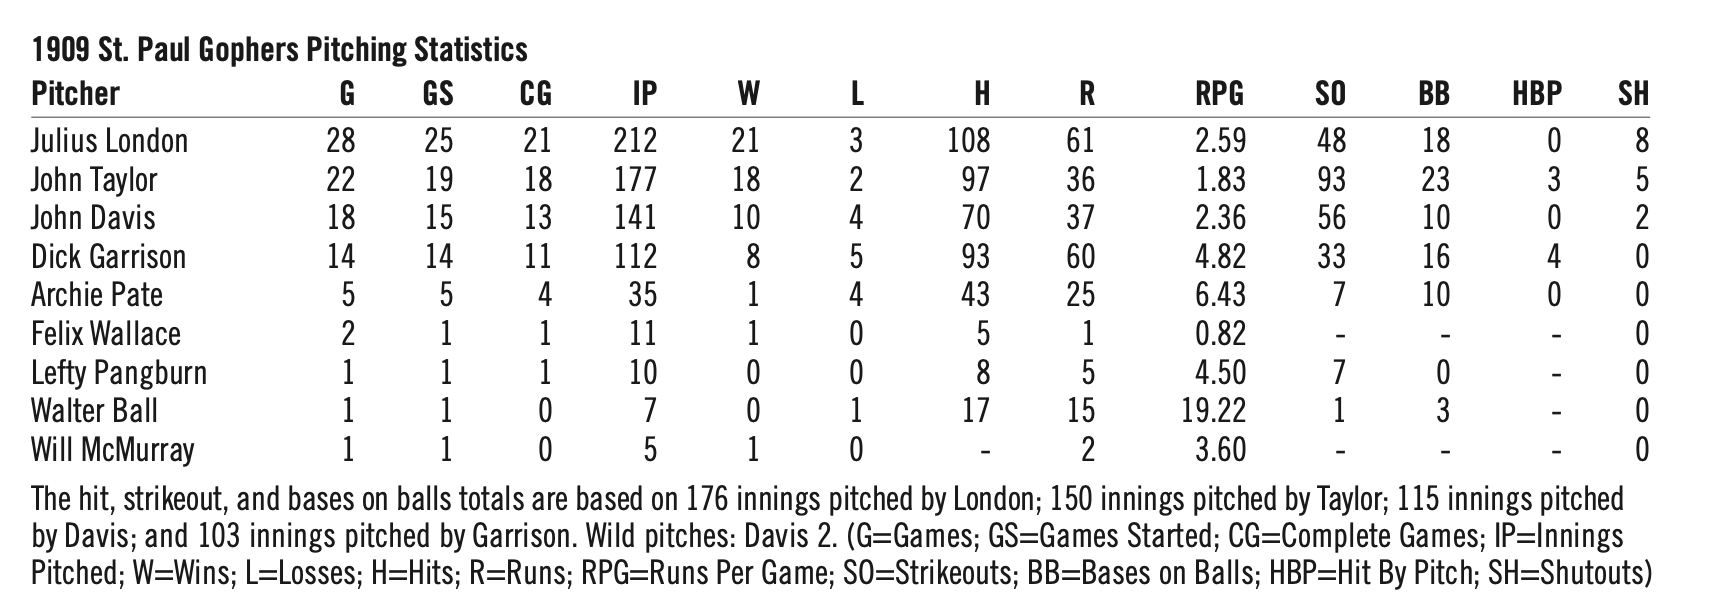 1909 St. Paul Gophers pitching stats